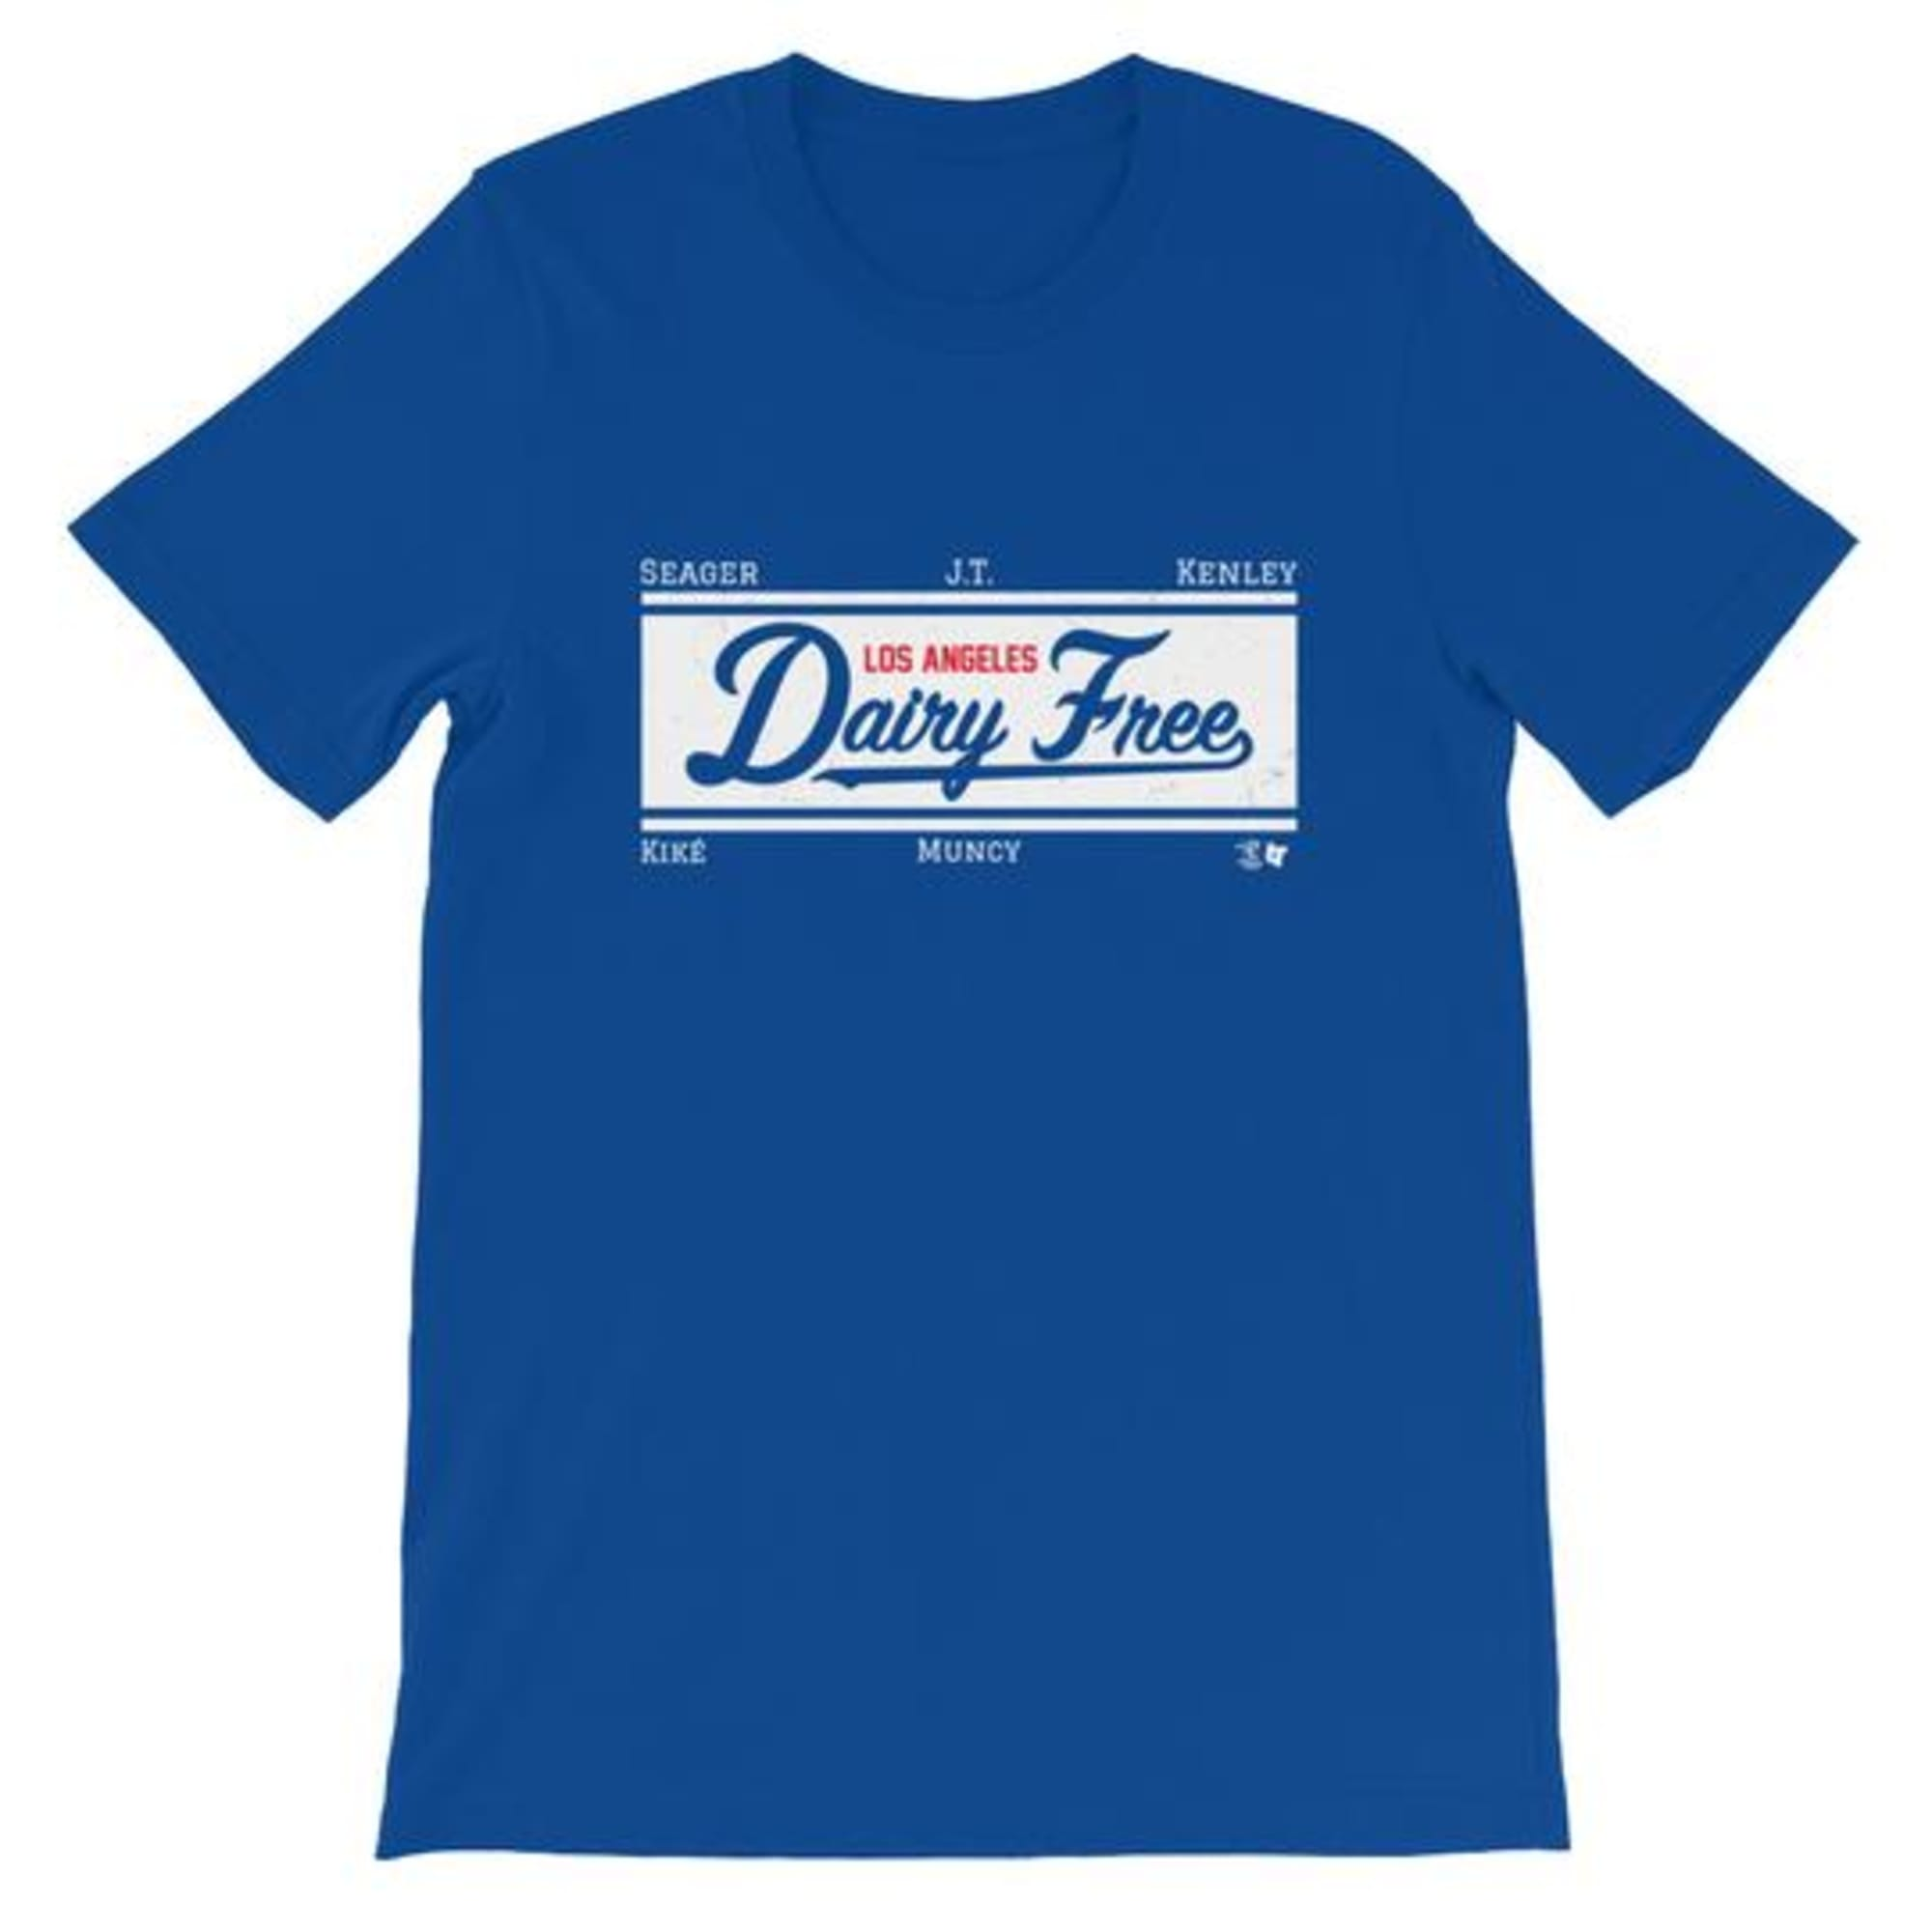 Some La Dodgers Are Going Dairy Free So Nab A T Shirt - Shirt A La Minute Groningen